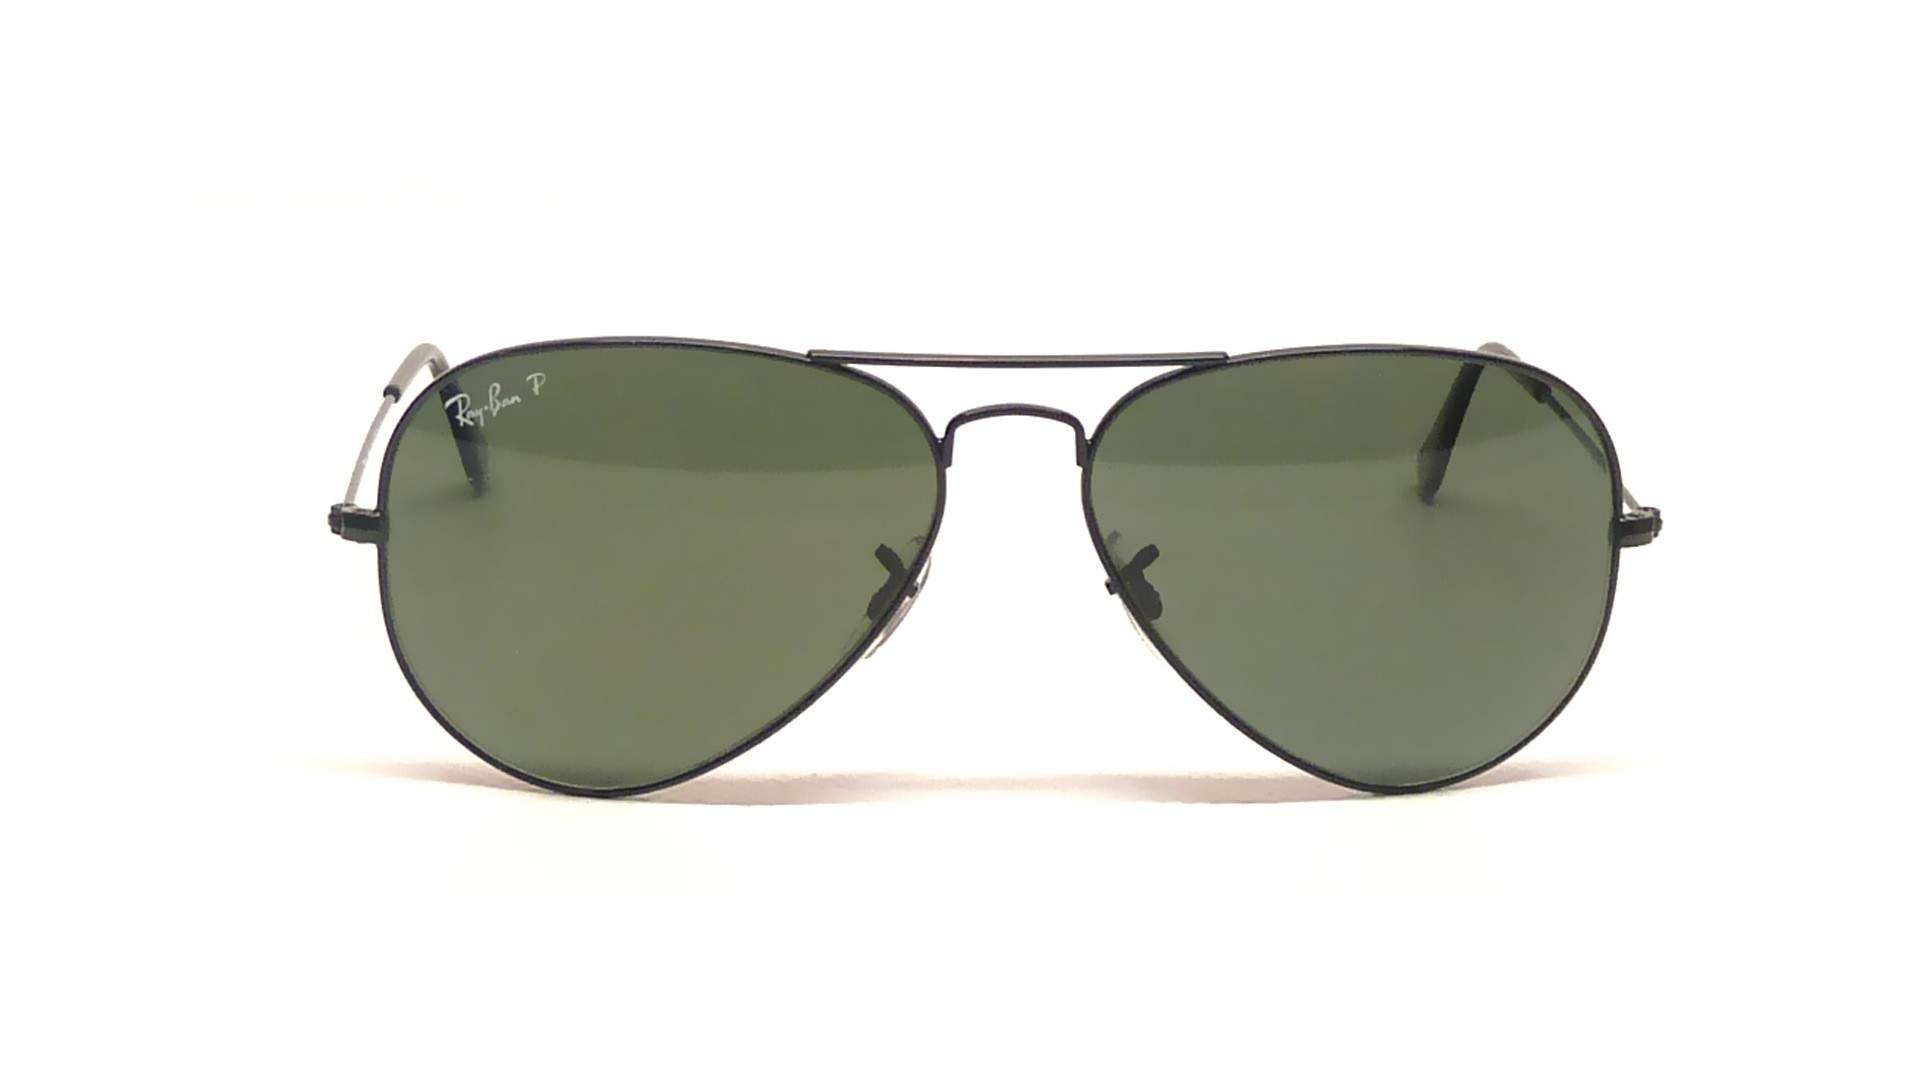 60bb7420c383b9 Sunglasses Ray-Ban Aviator Large Metal Black RB3025 002 58 58-14 Medium  Polarized